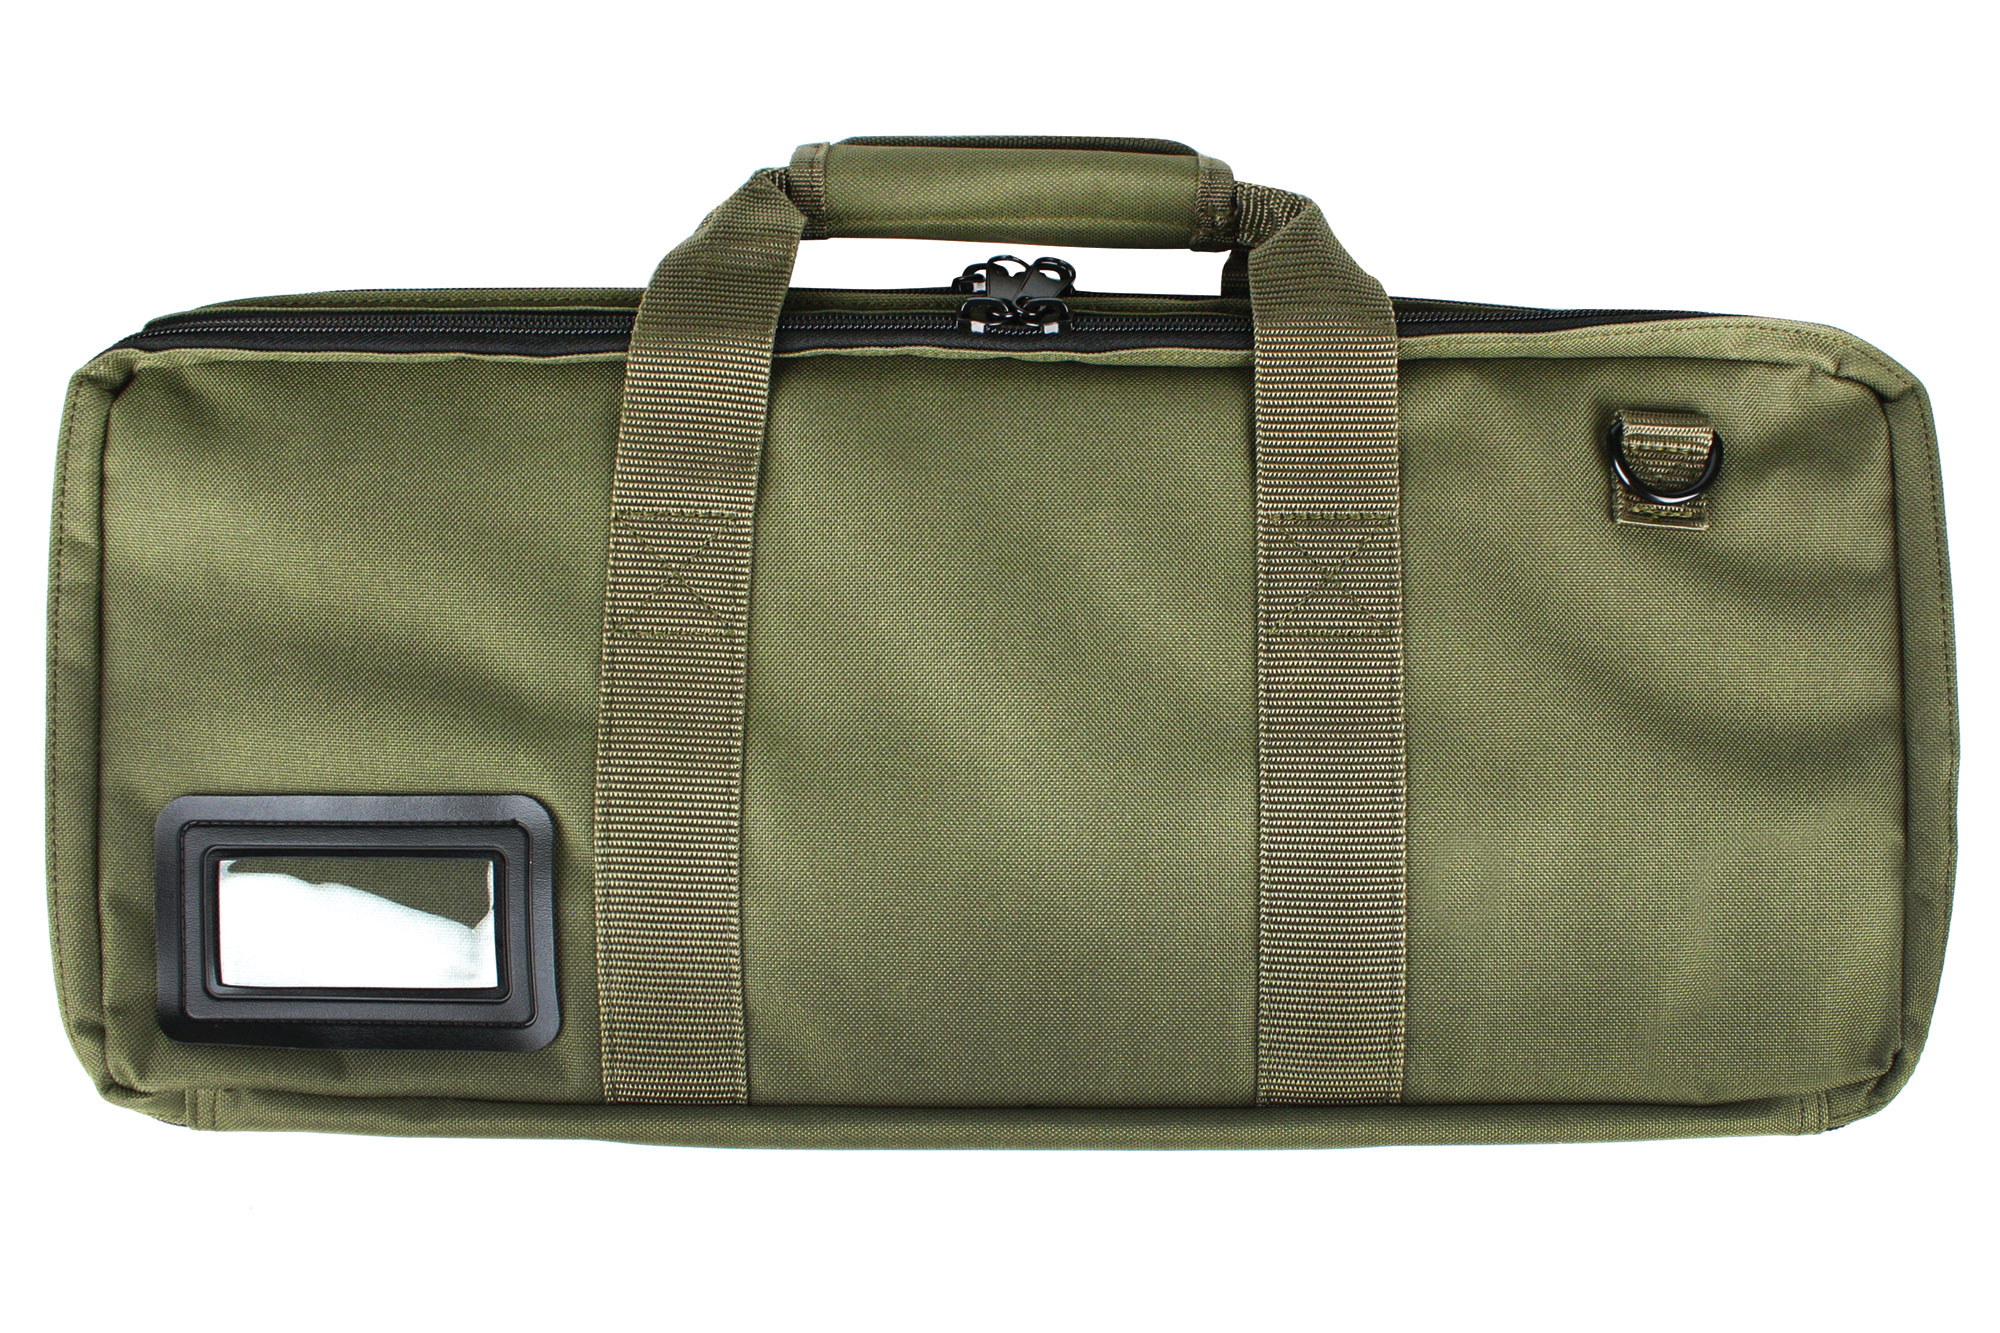 Ultimate Edge Evolution Deluxe Knife Bag 18 Pocket Olive